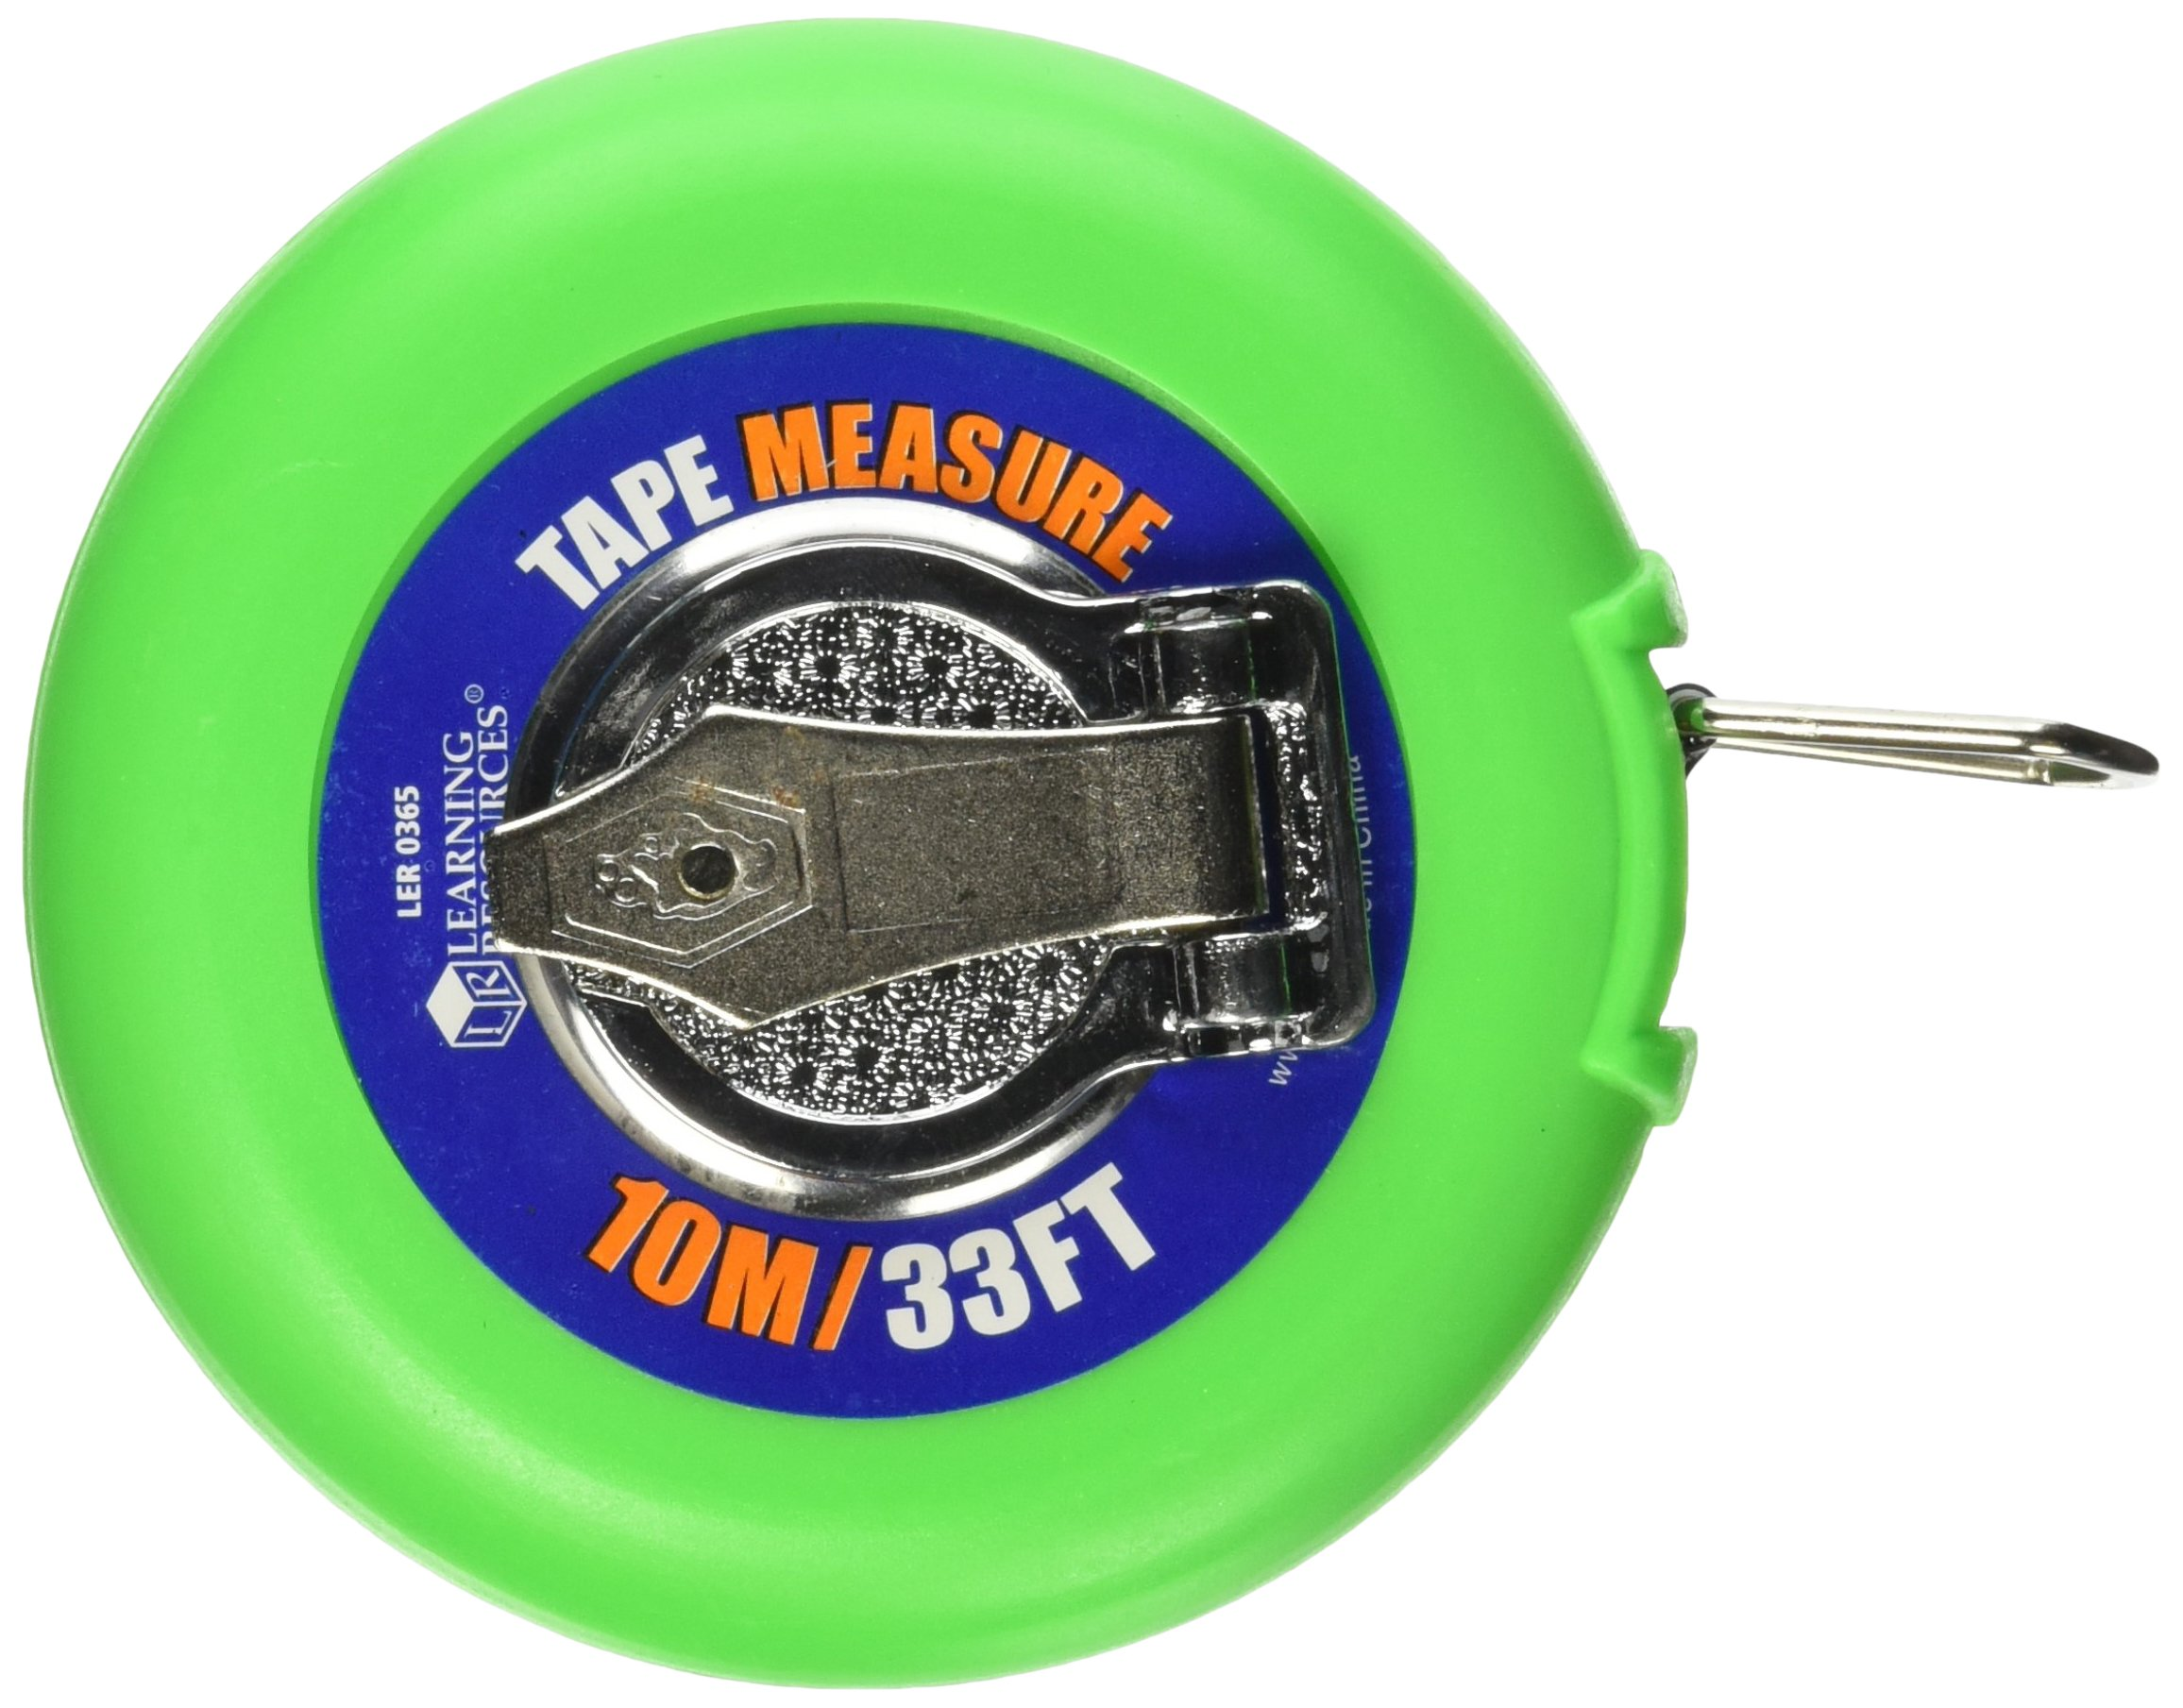 School Smart Easy Wind Up Tape Measurer with Inches and Metric - 33 foot